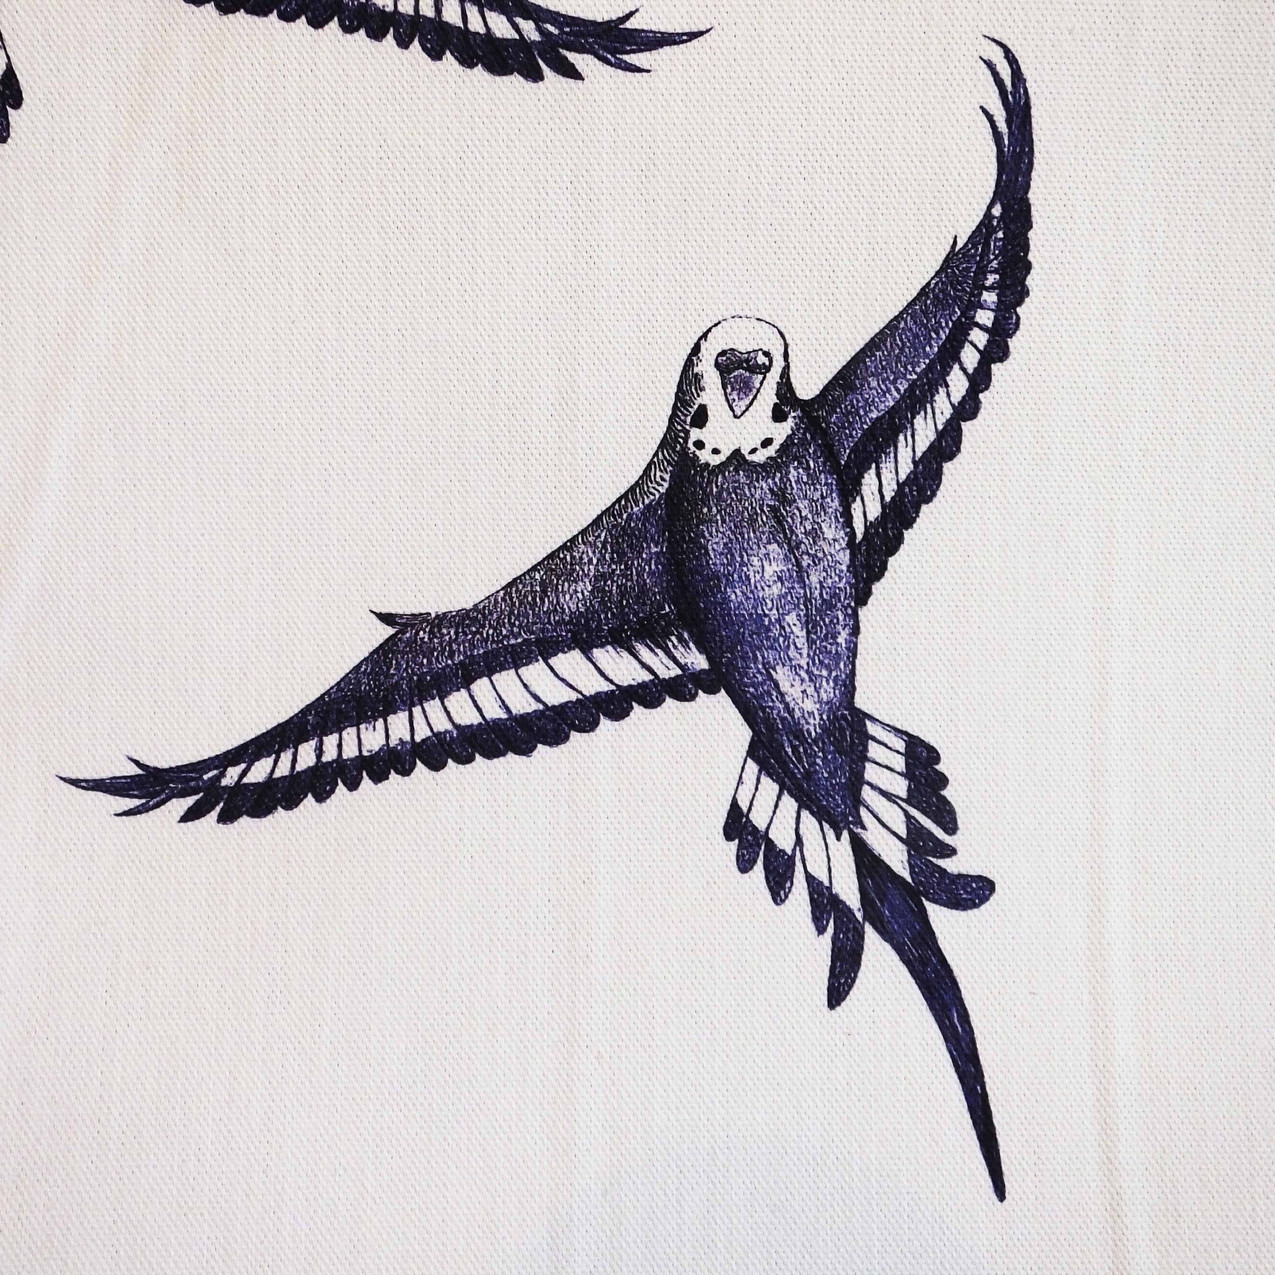 Jenny K Home - repeat pattern budgie bird fabric blue black white traditional country classic textile 3a